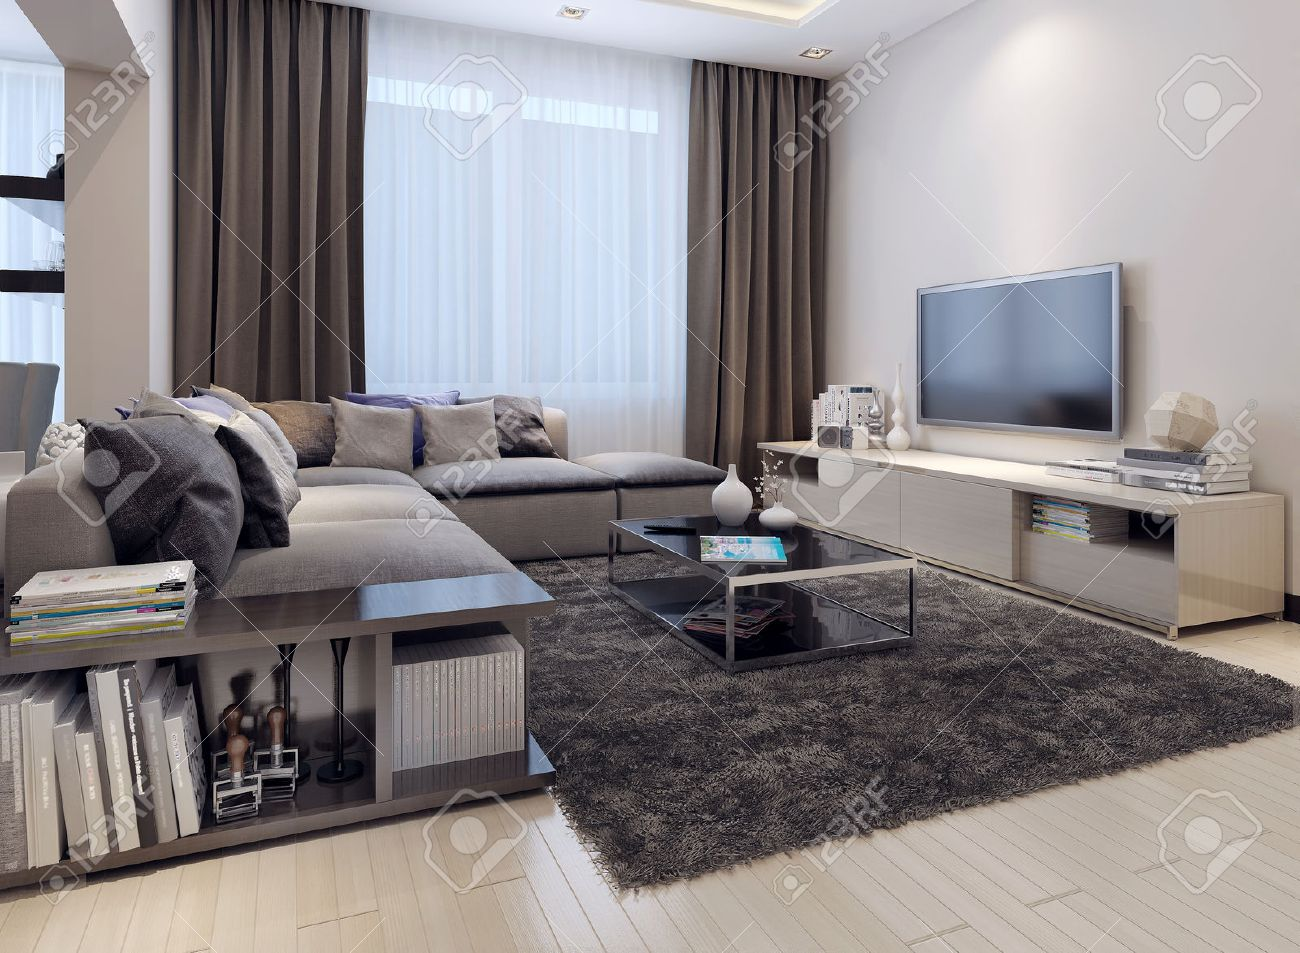 contemporary style living room. Living room contemporary style  3D images Stock Photo 47512668 Room Contemporary Style Images Picture And